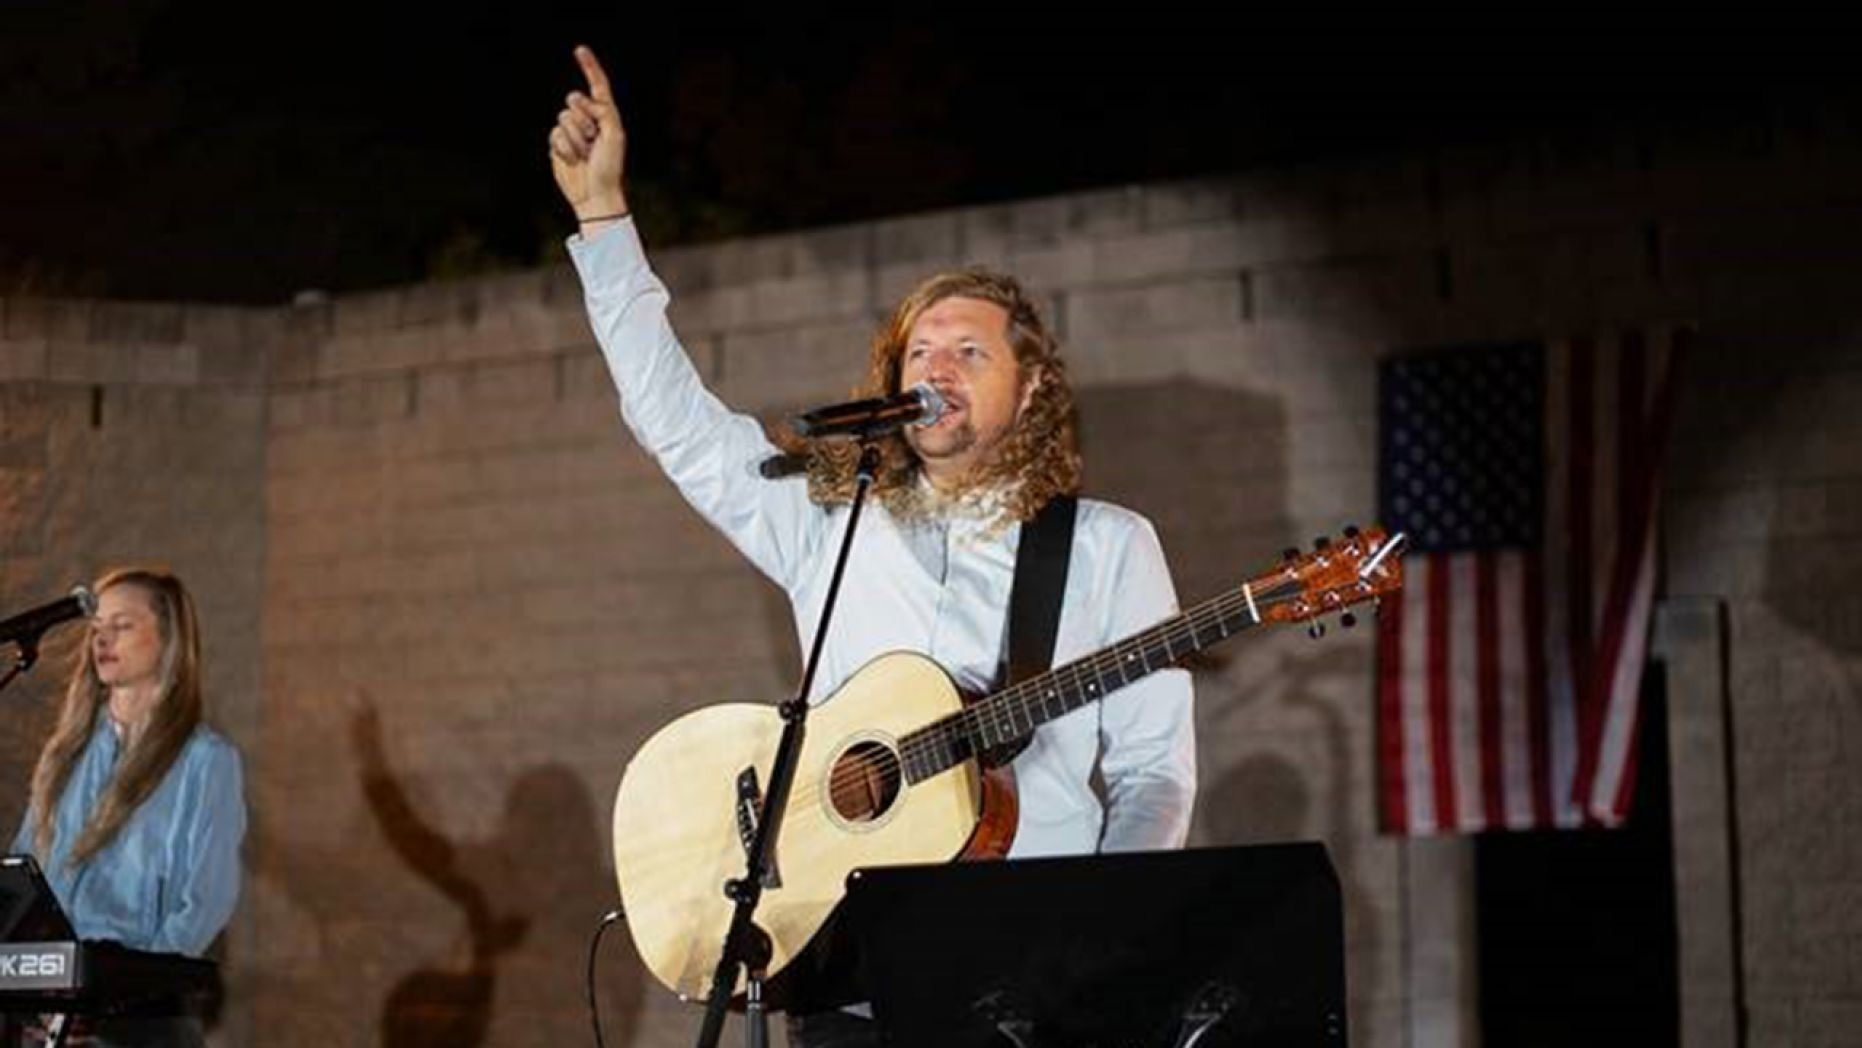 Worship leader Sean Feucht is running for the third U.S. congressional district in Northern California.